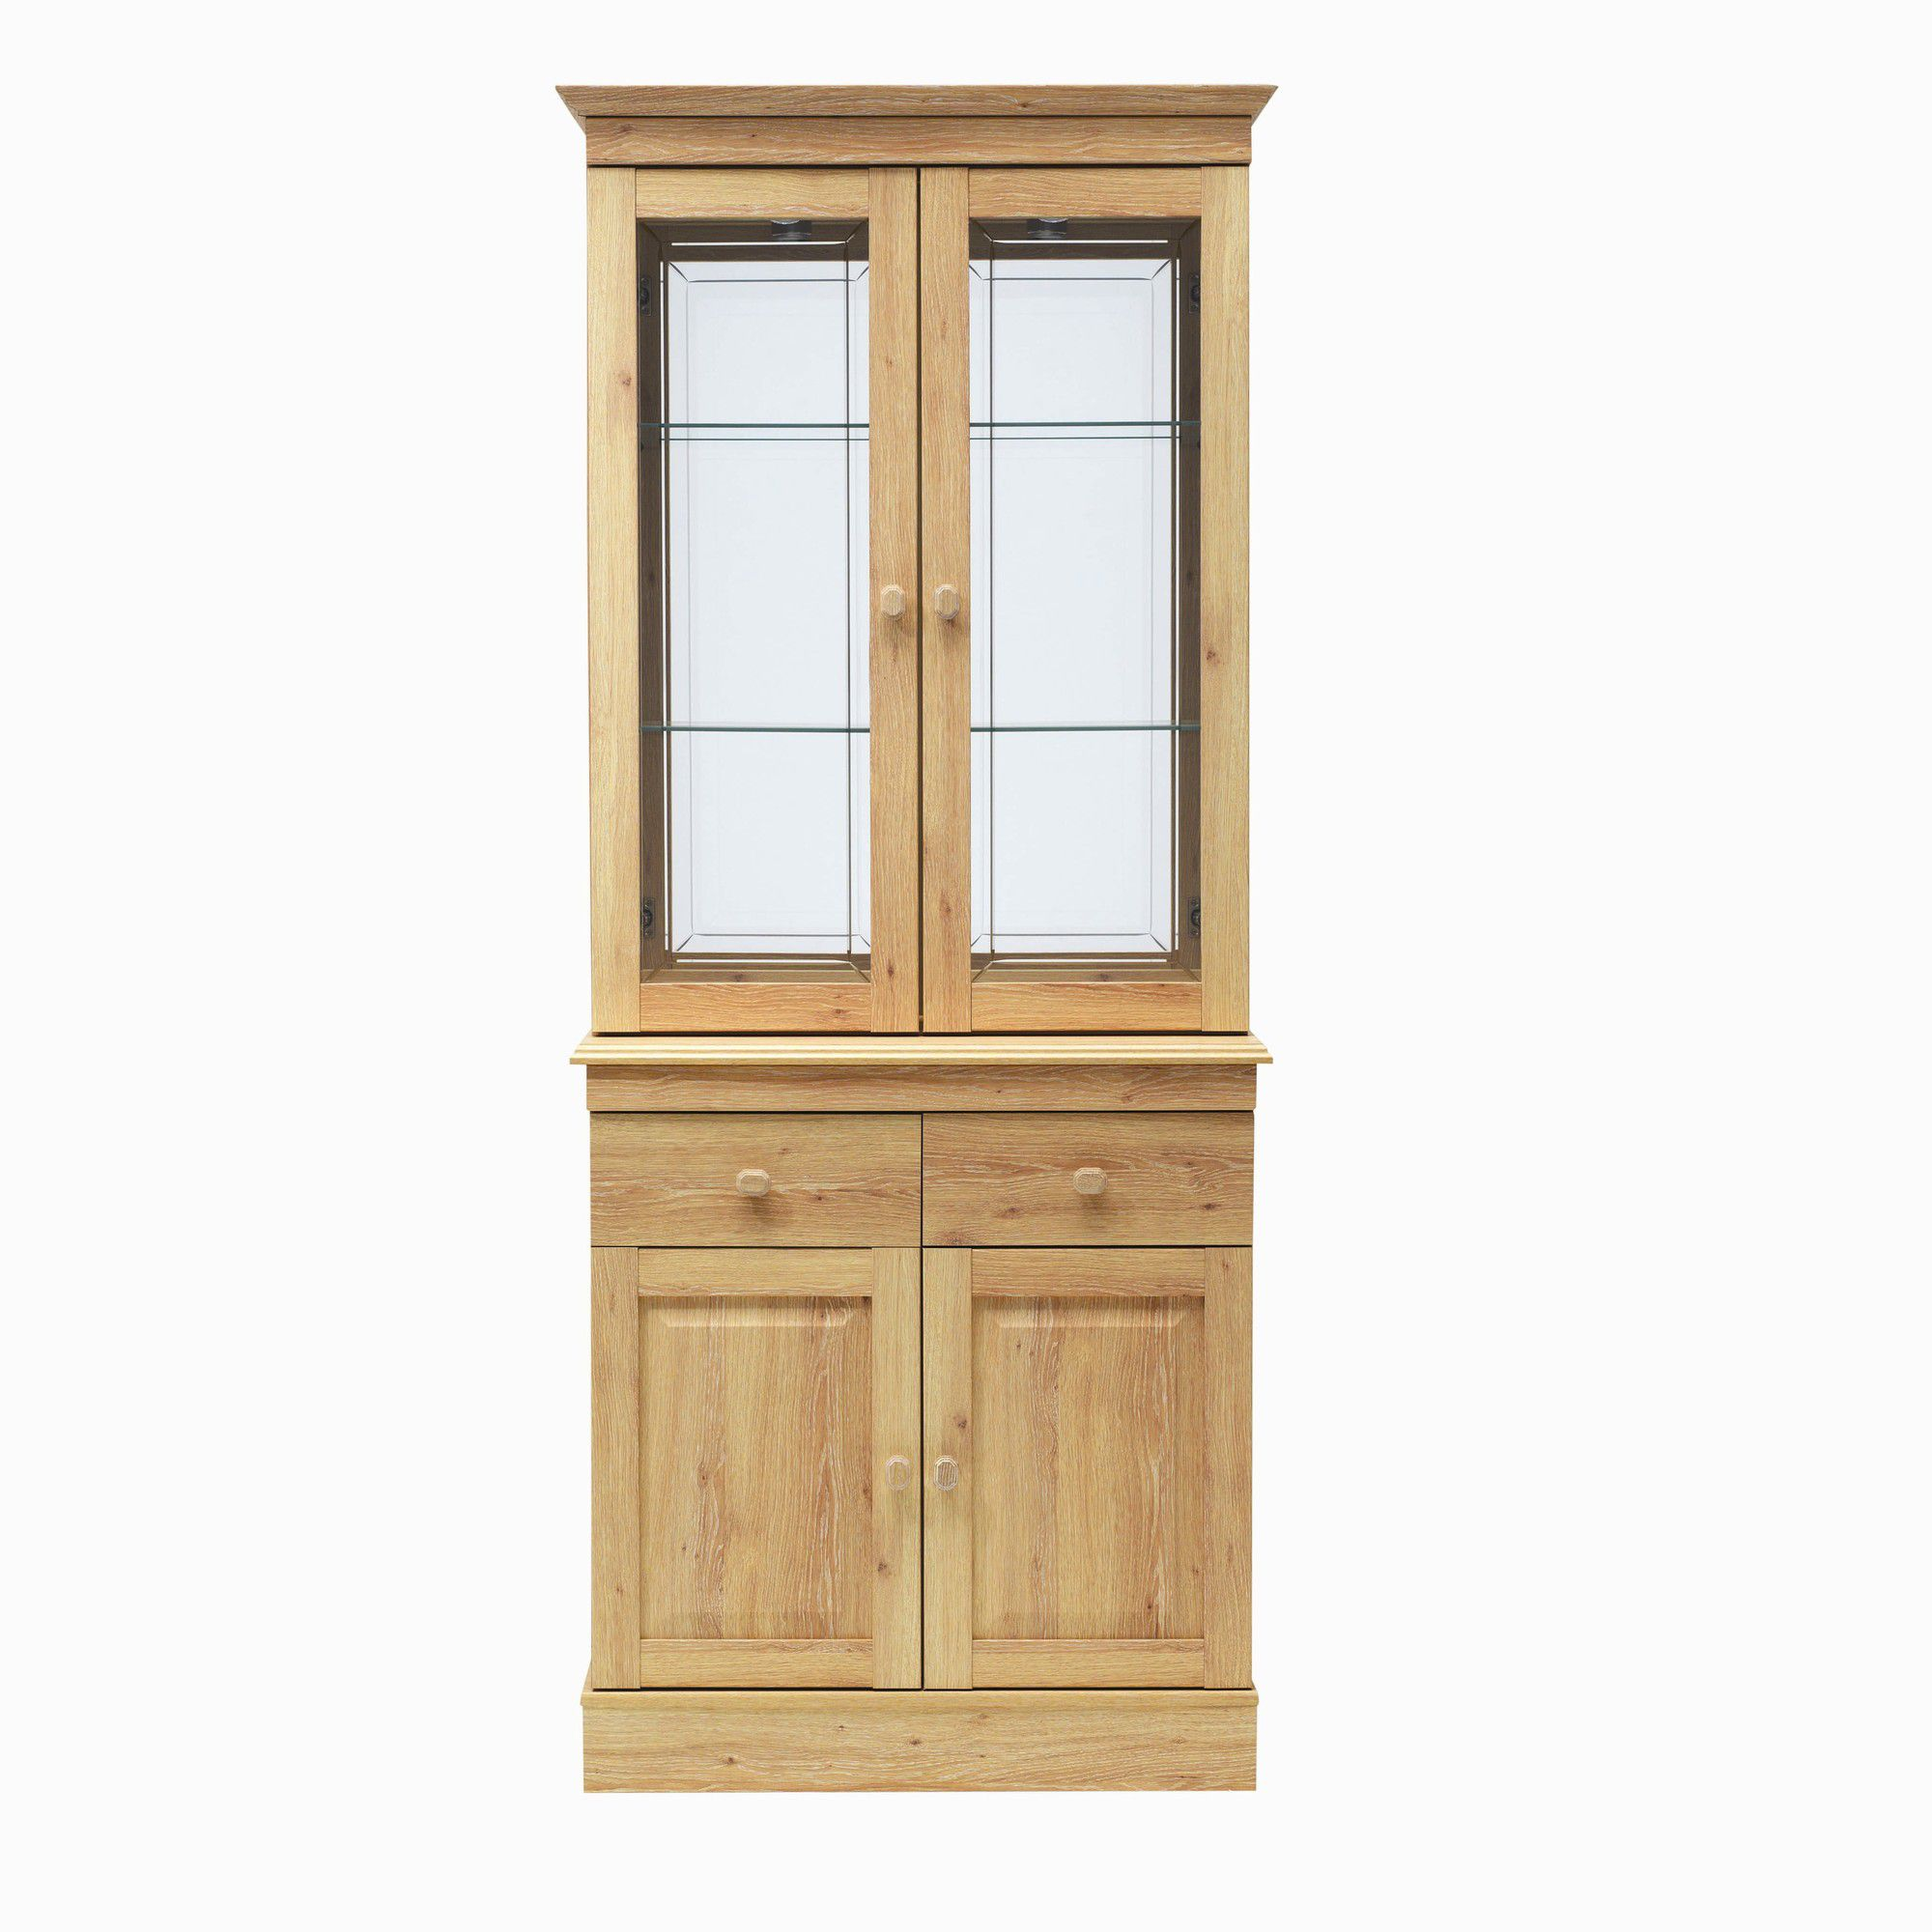 Caxton Driftwood Two Glazed Door Display Cabinet in Limed Oak at Tesco Direct